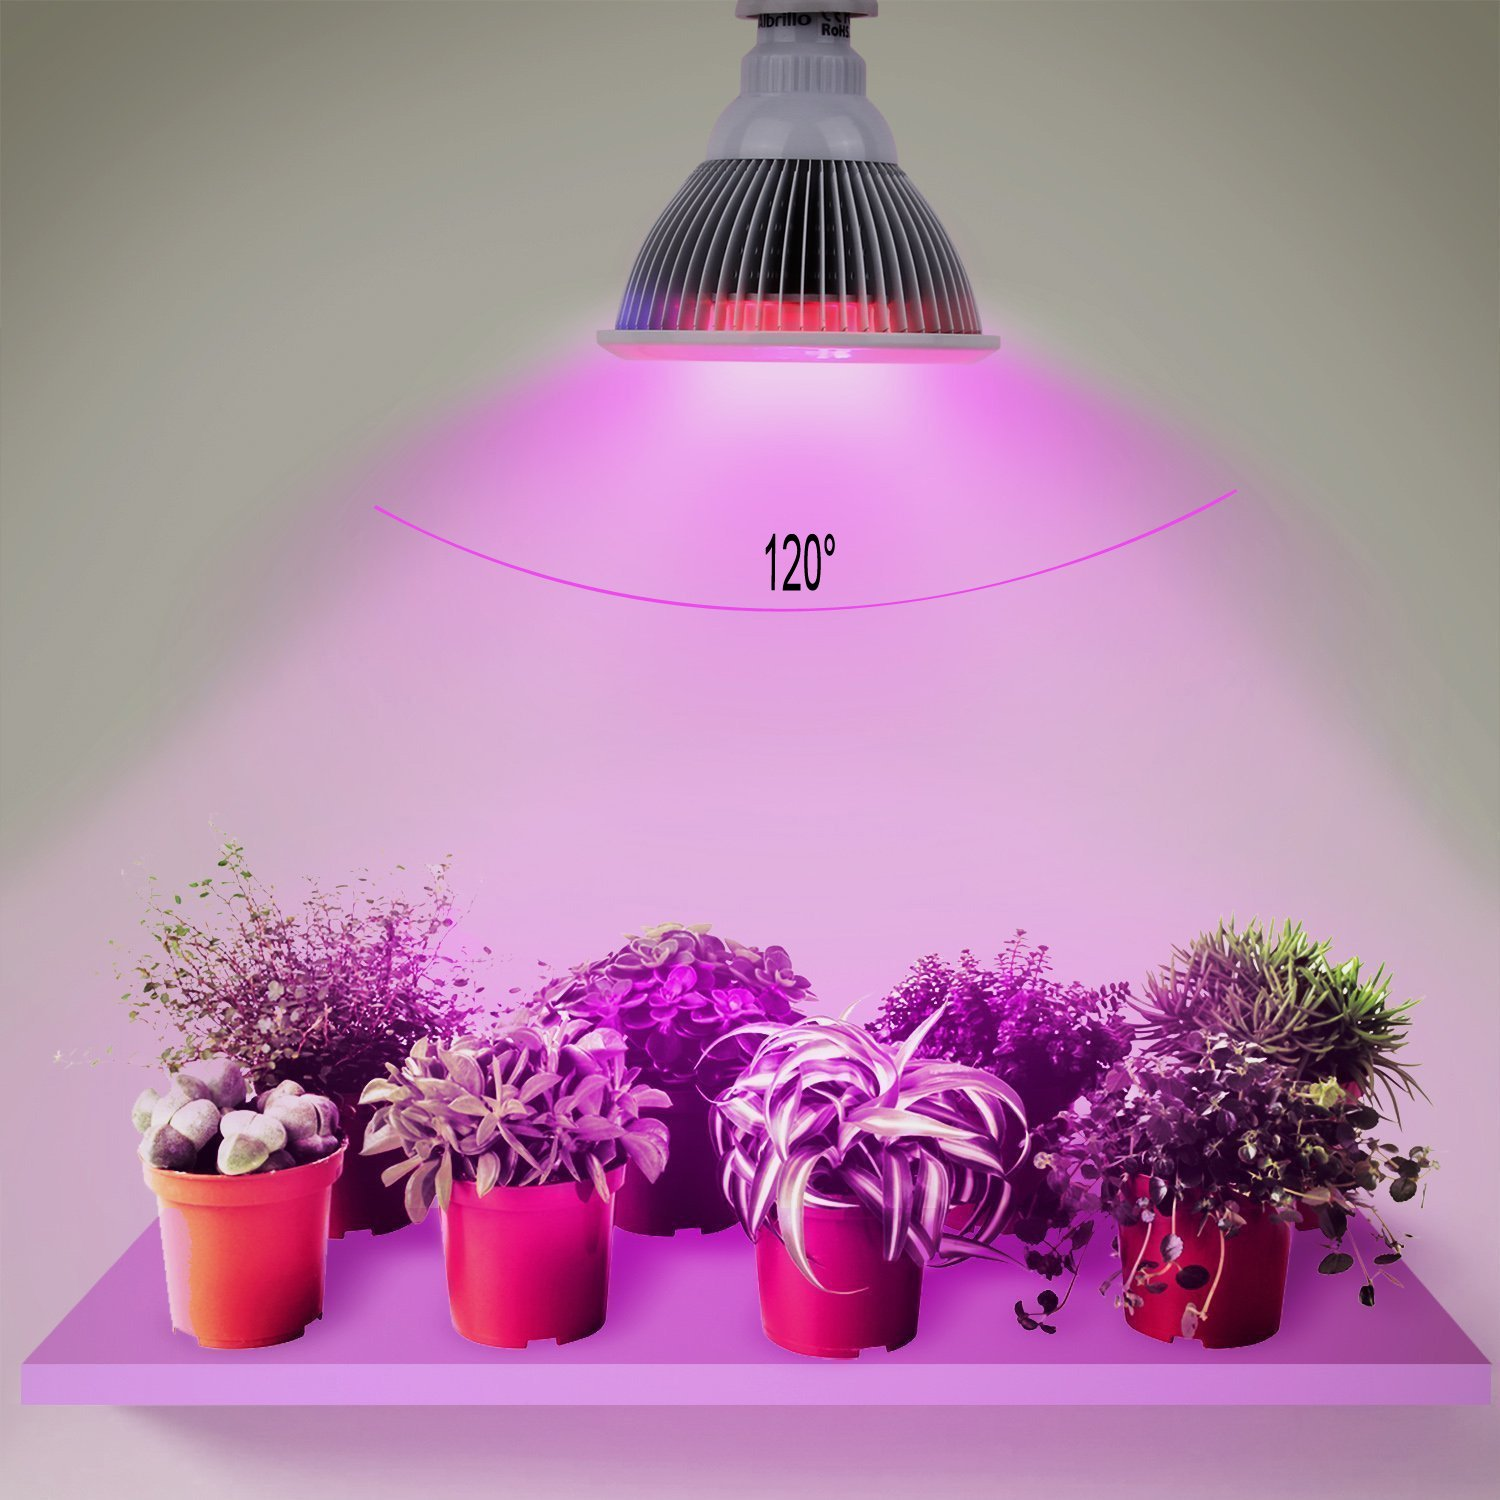 LED Grow Light Bulb Full Spectrum High Effcient LED Growing Bulbs Freal Indoor Garden Plants Lamp for Hydroponic Aquatic And Greenhouse Planting&Flower (25W 78LEDs 120 Degree Wide Area Coverage)